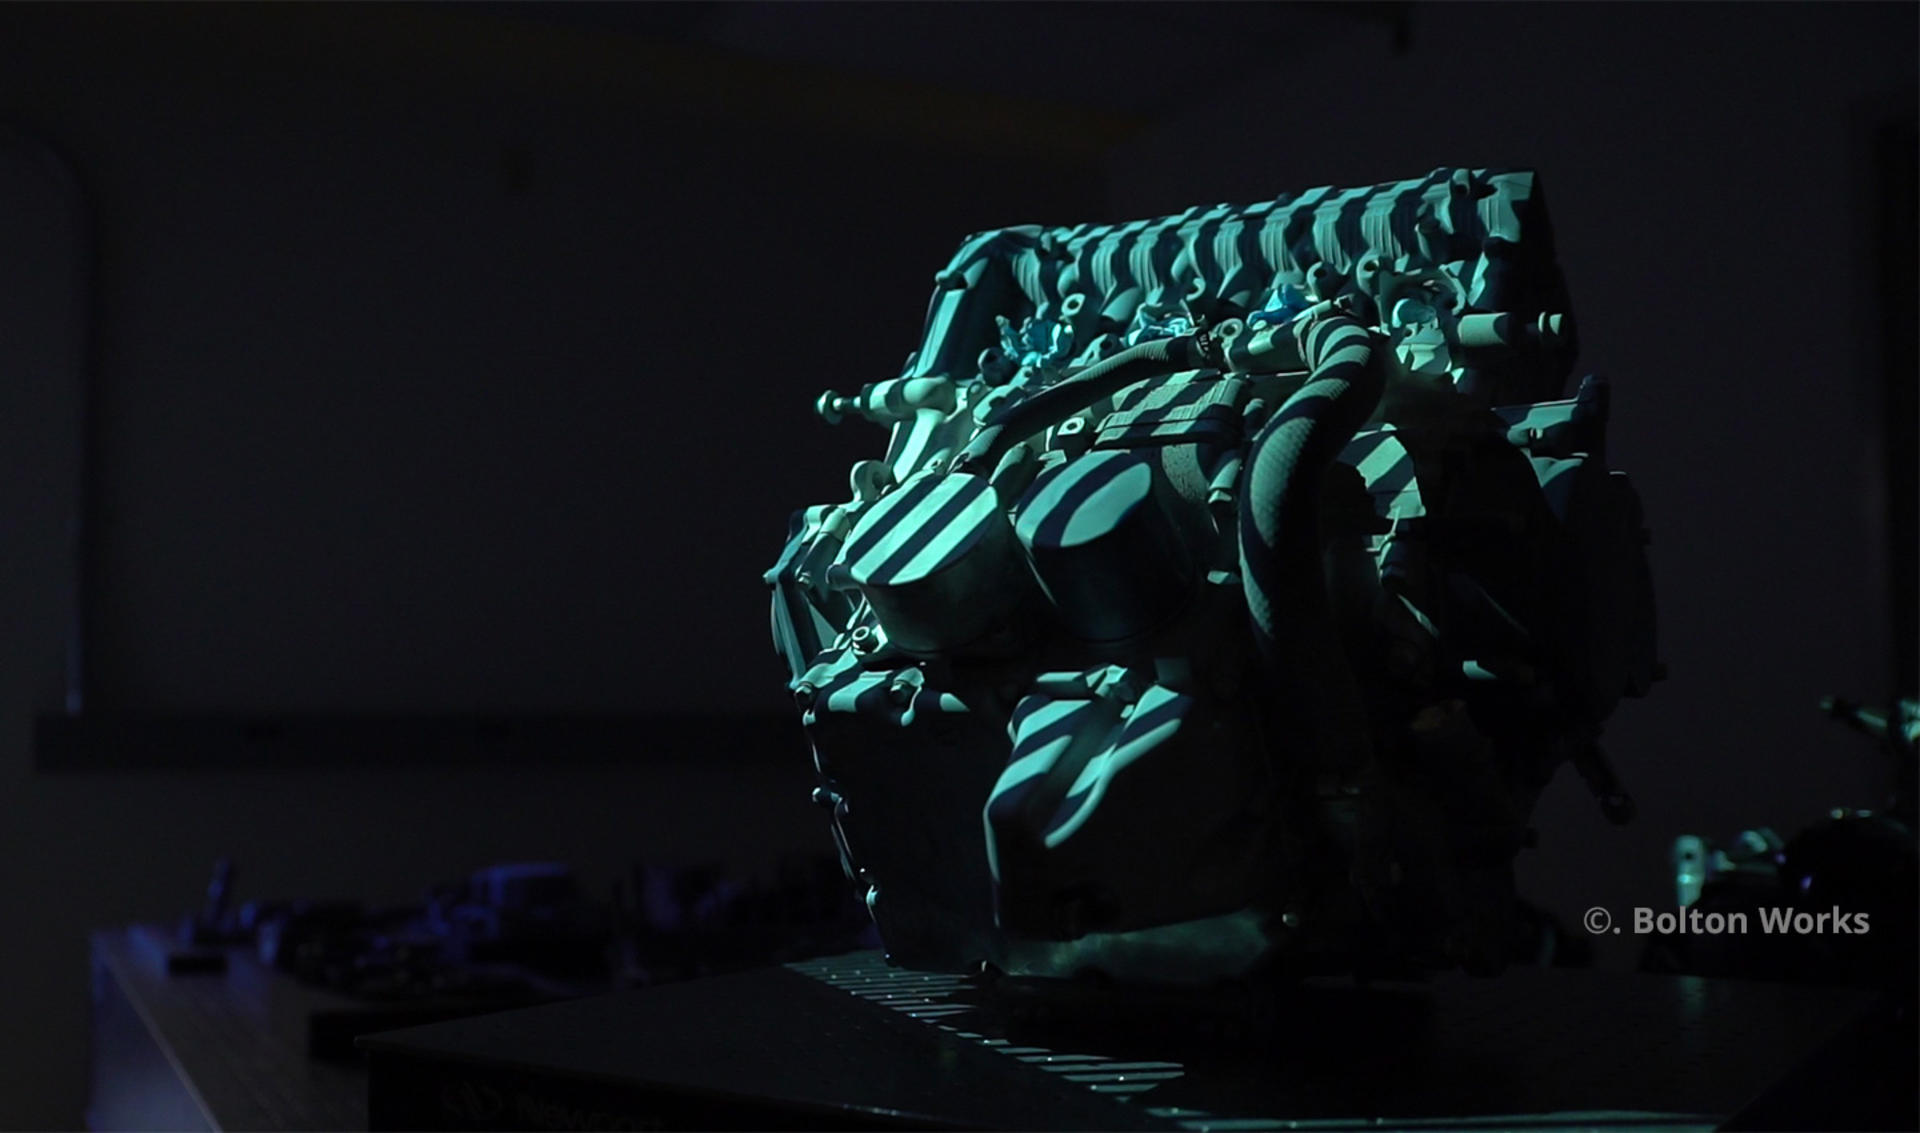 3D scanning an entire motorcycle engine with Geomagic Design X and Geomagic Wrap